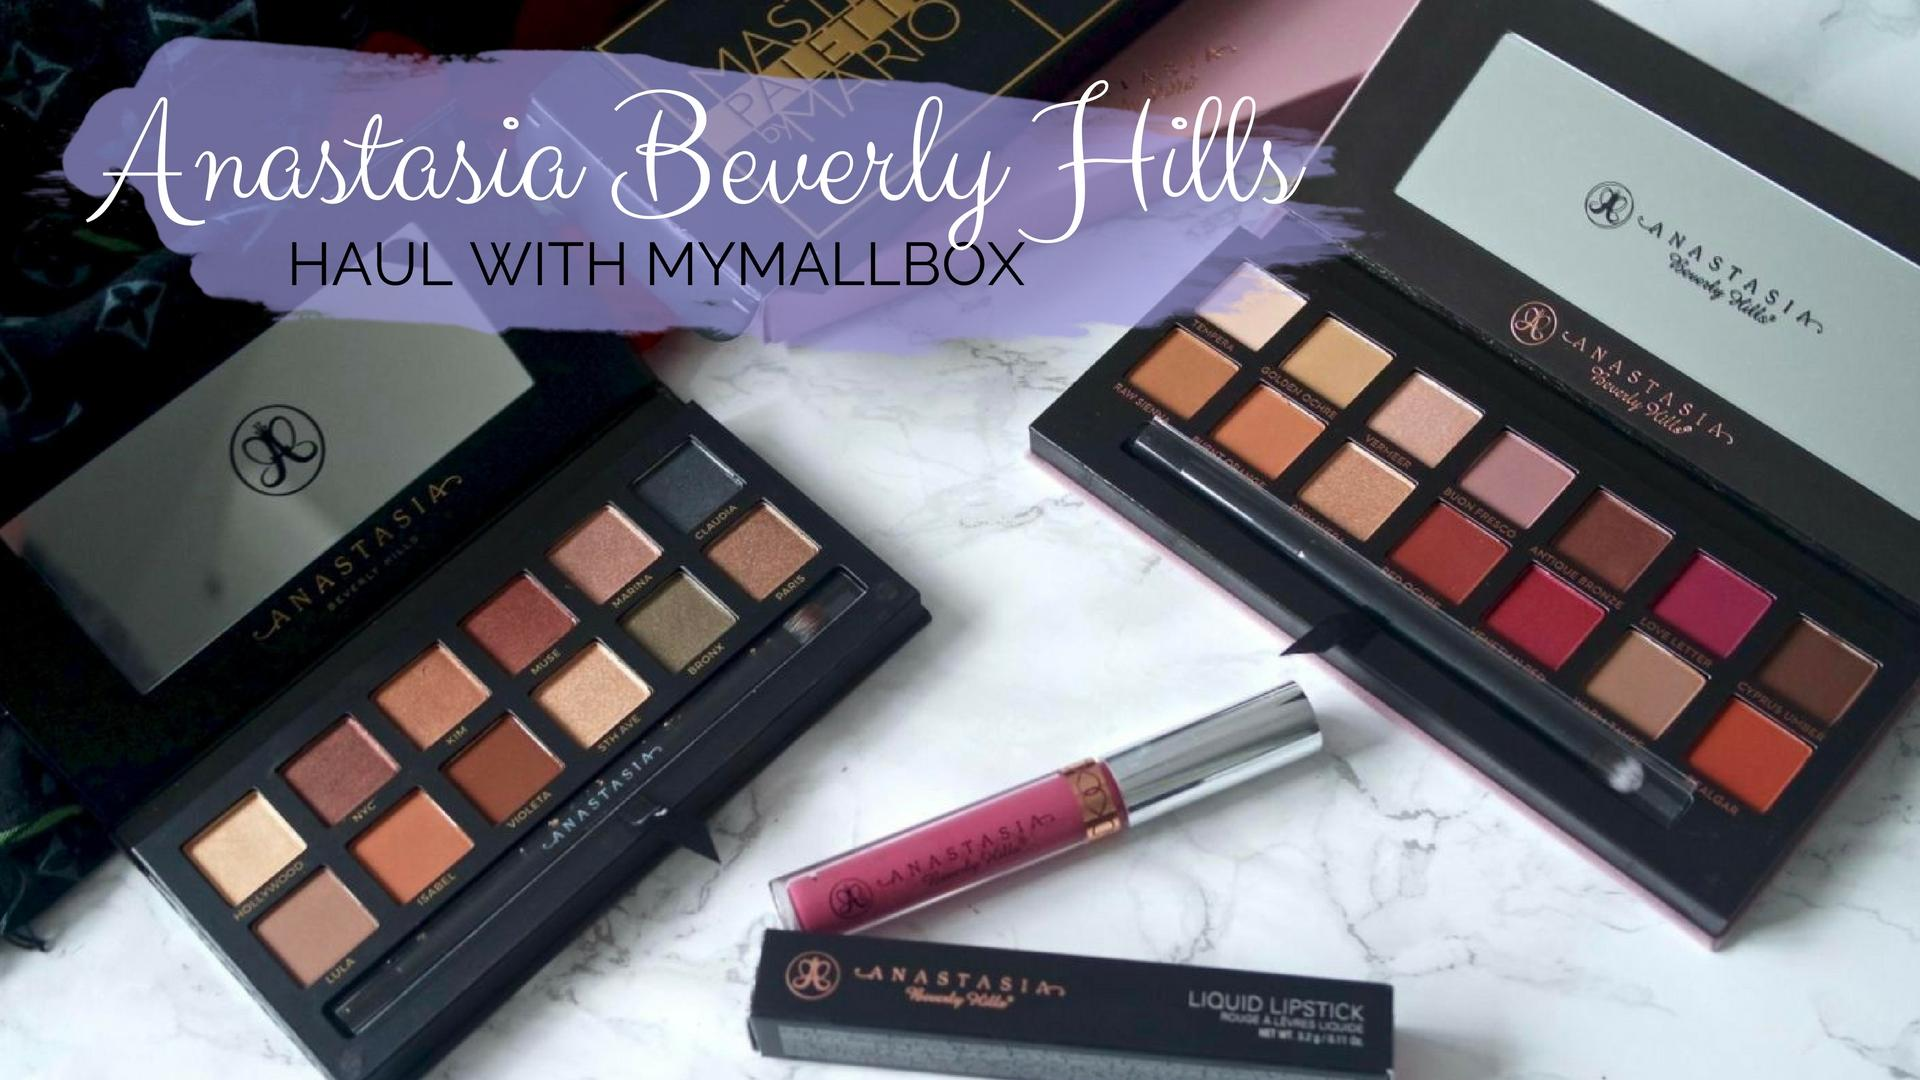 Anastasia Beverly Hills haul with MyMallBox || Beauty